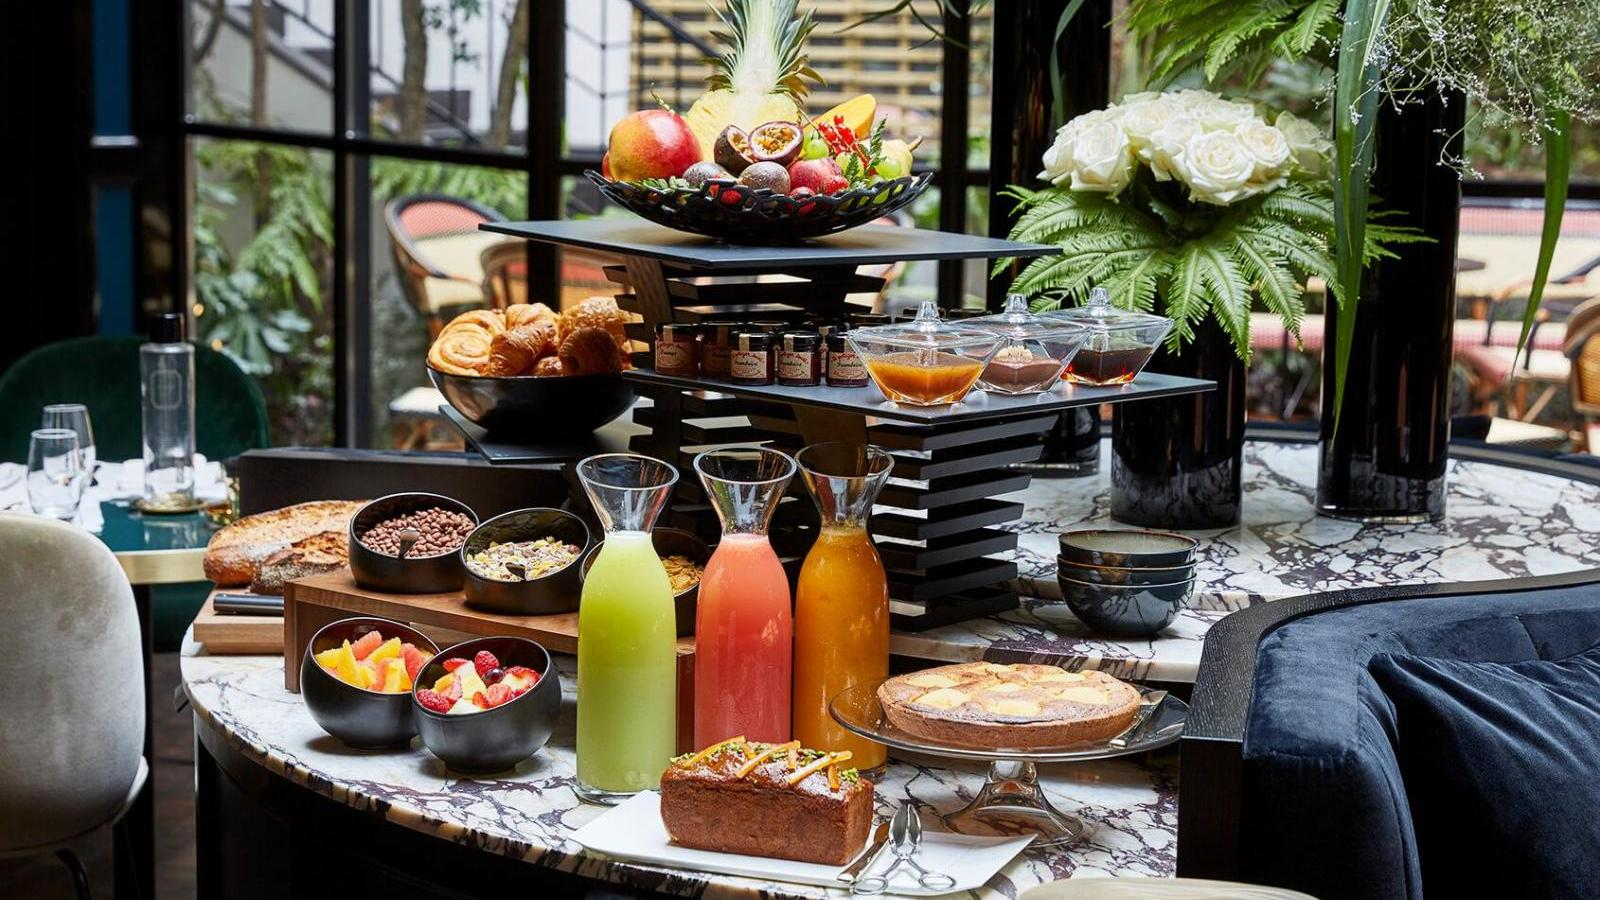 Easter brunch in the heart of Paris